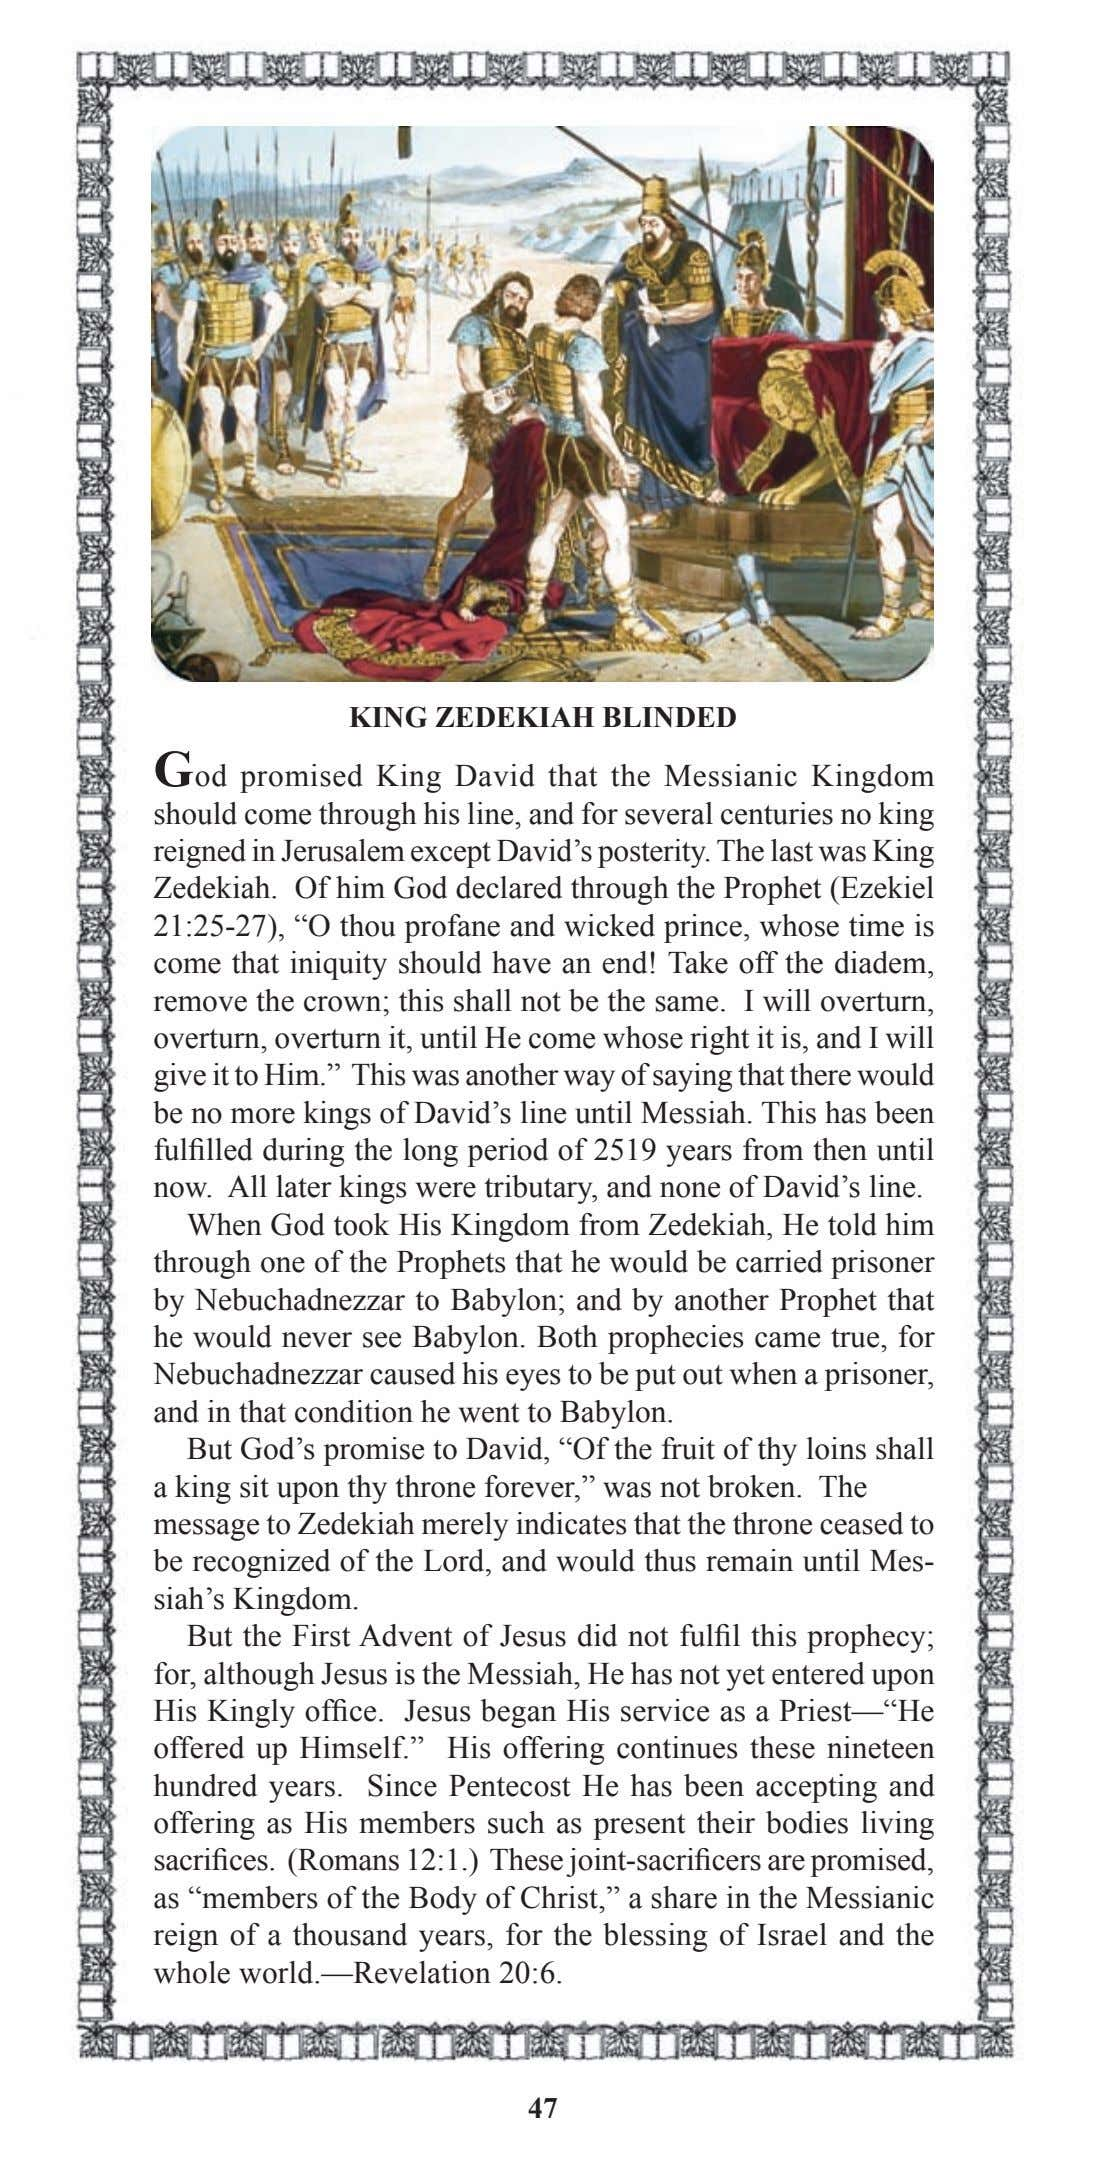 KING ZEDEKIAH BLINDED God promised King David that the Messianic Kingdom should come through his